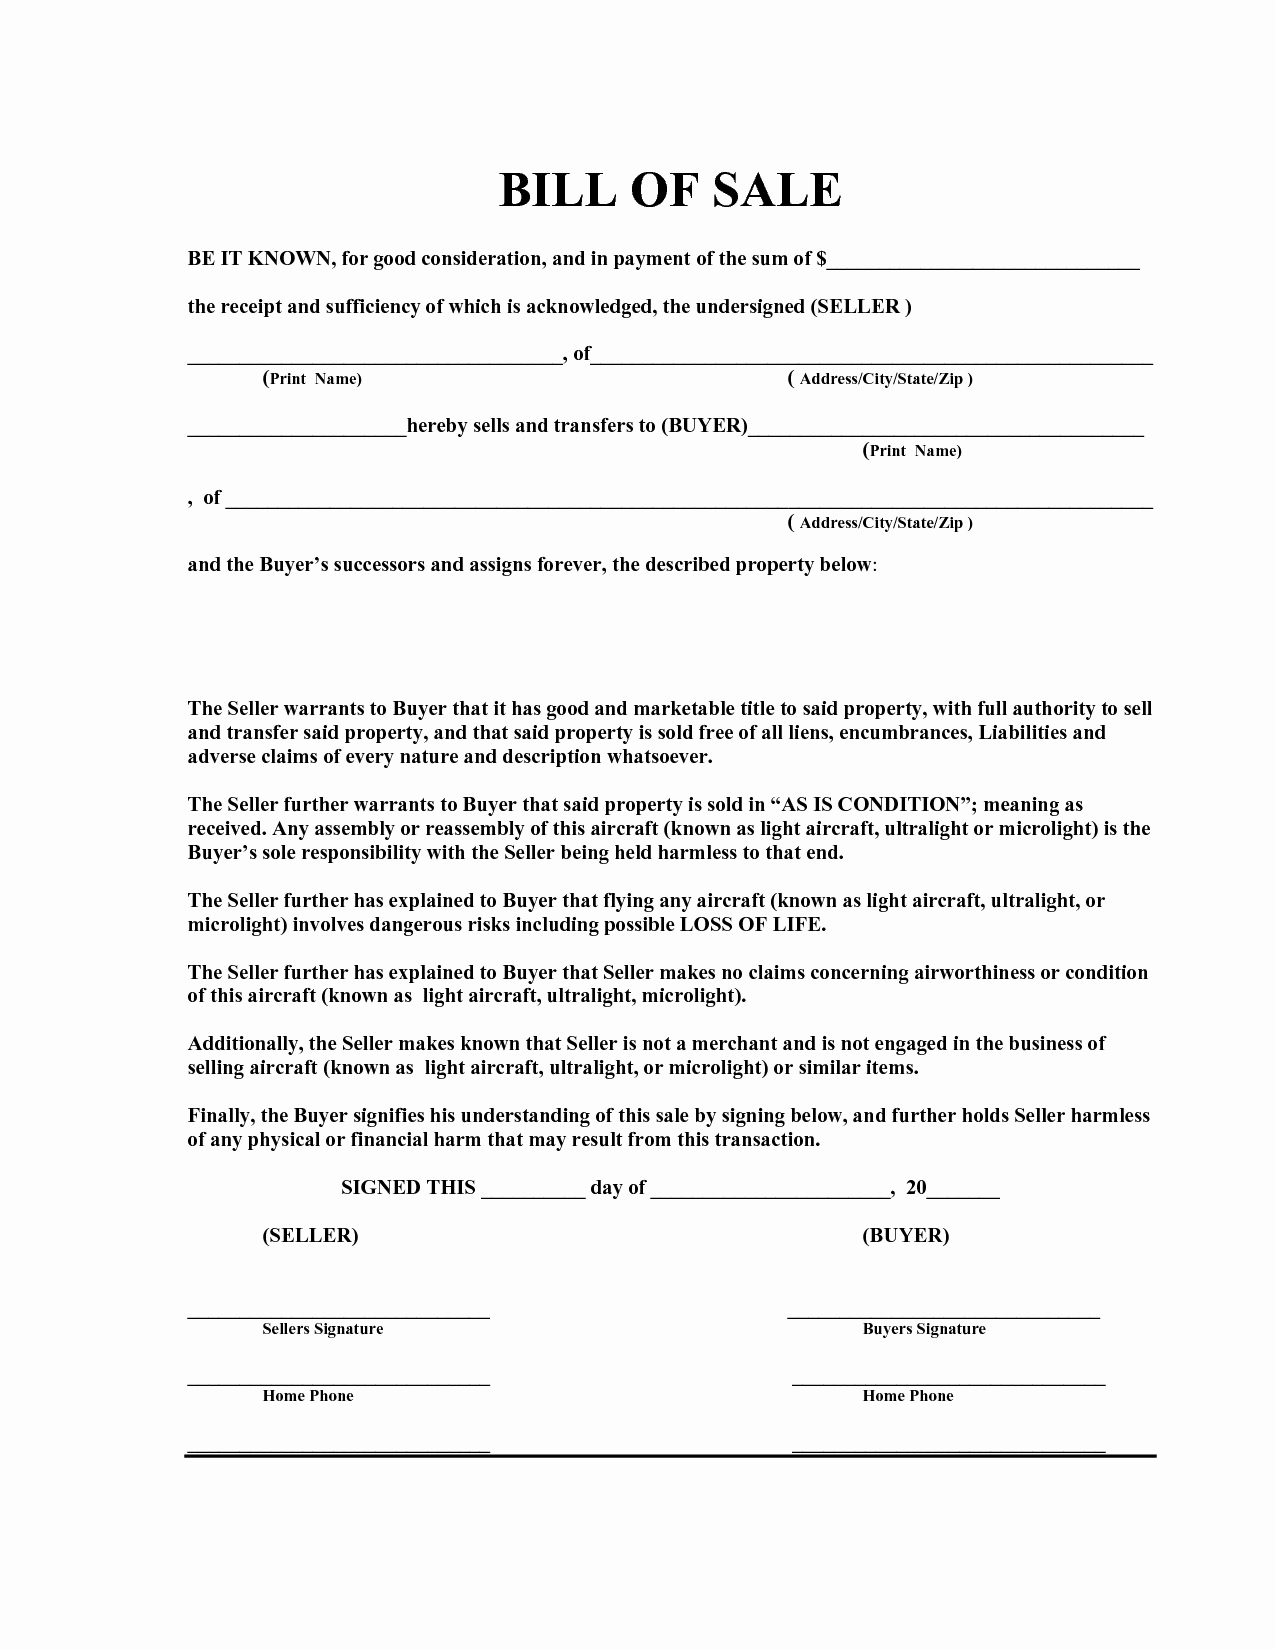 Bill Of Sale Printable Template Unique Free Bill Of Sale Template Pdf by Marymenti as is Bill